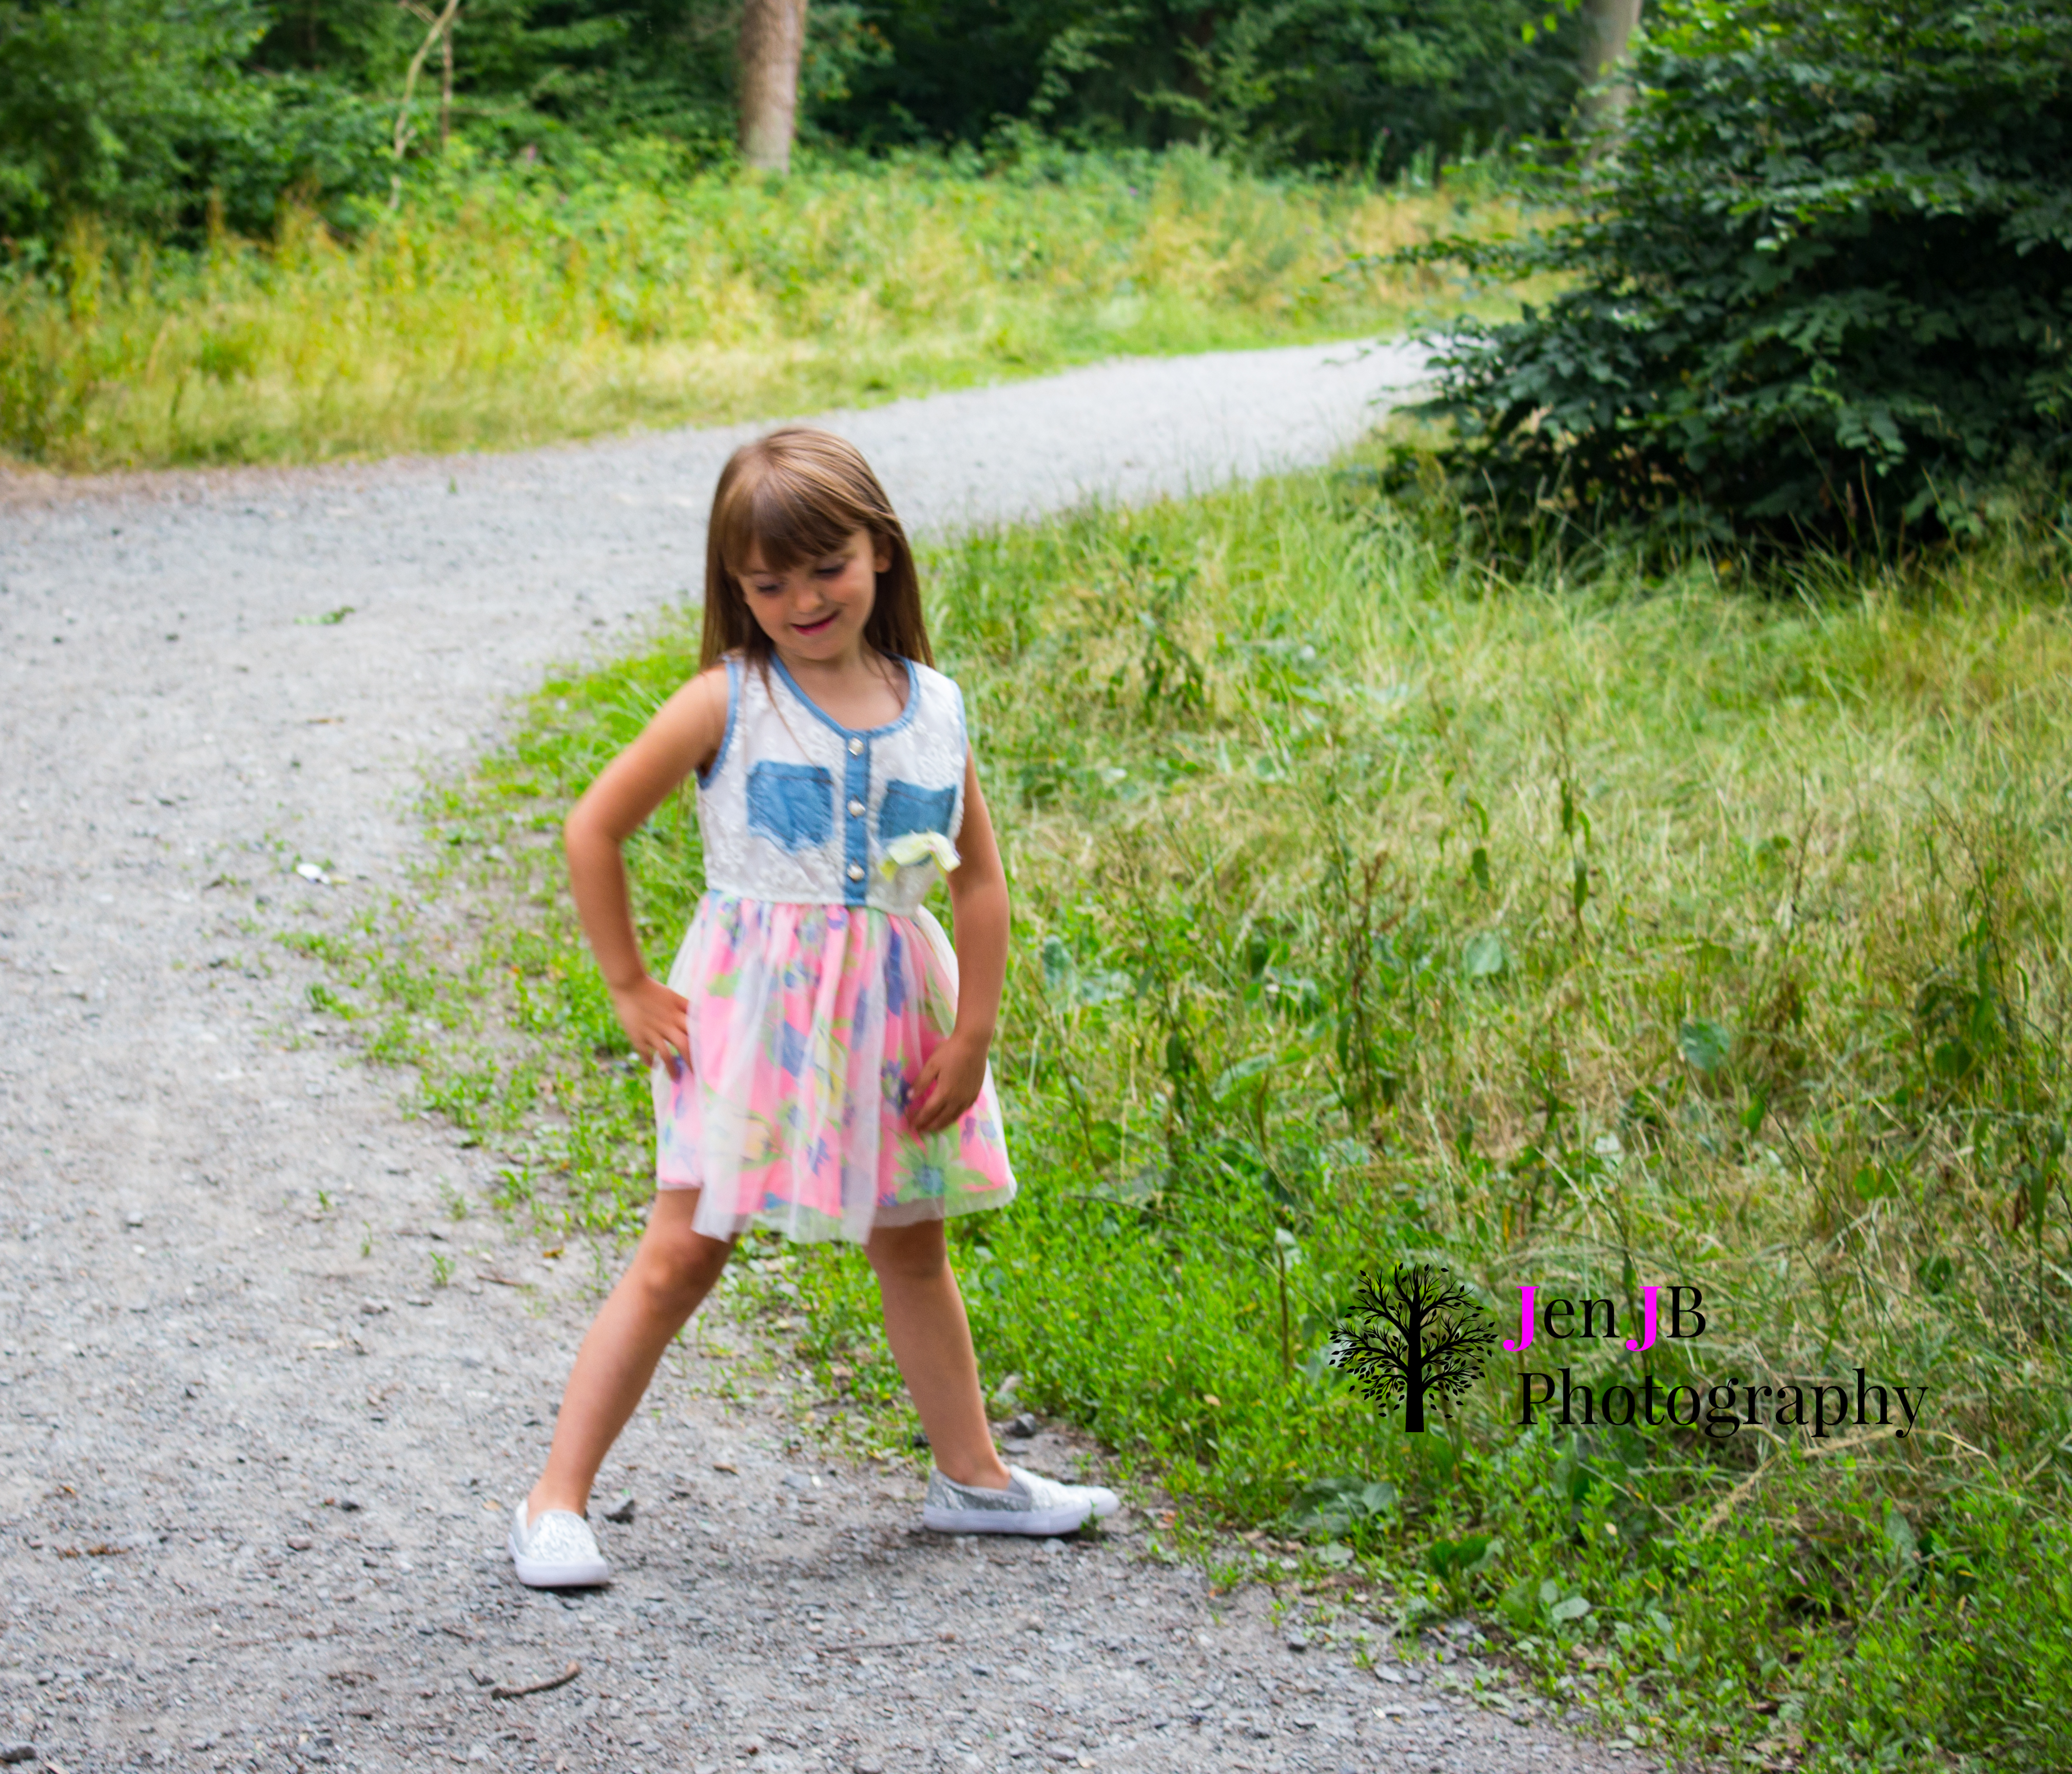 Shooting In Peyton Colorado: My Second Shoot With A Child Star